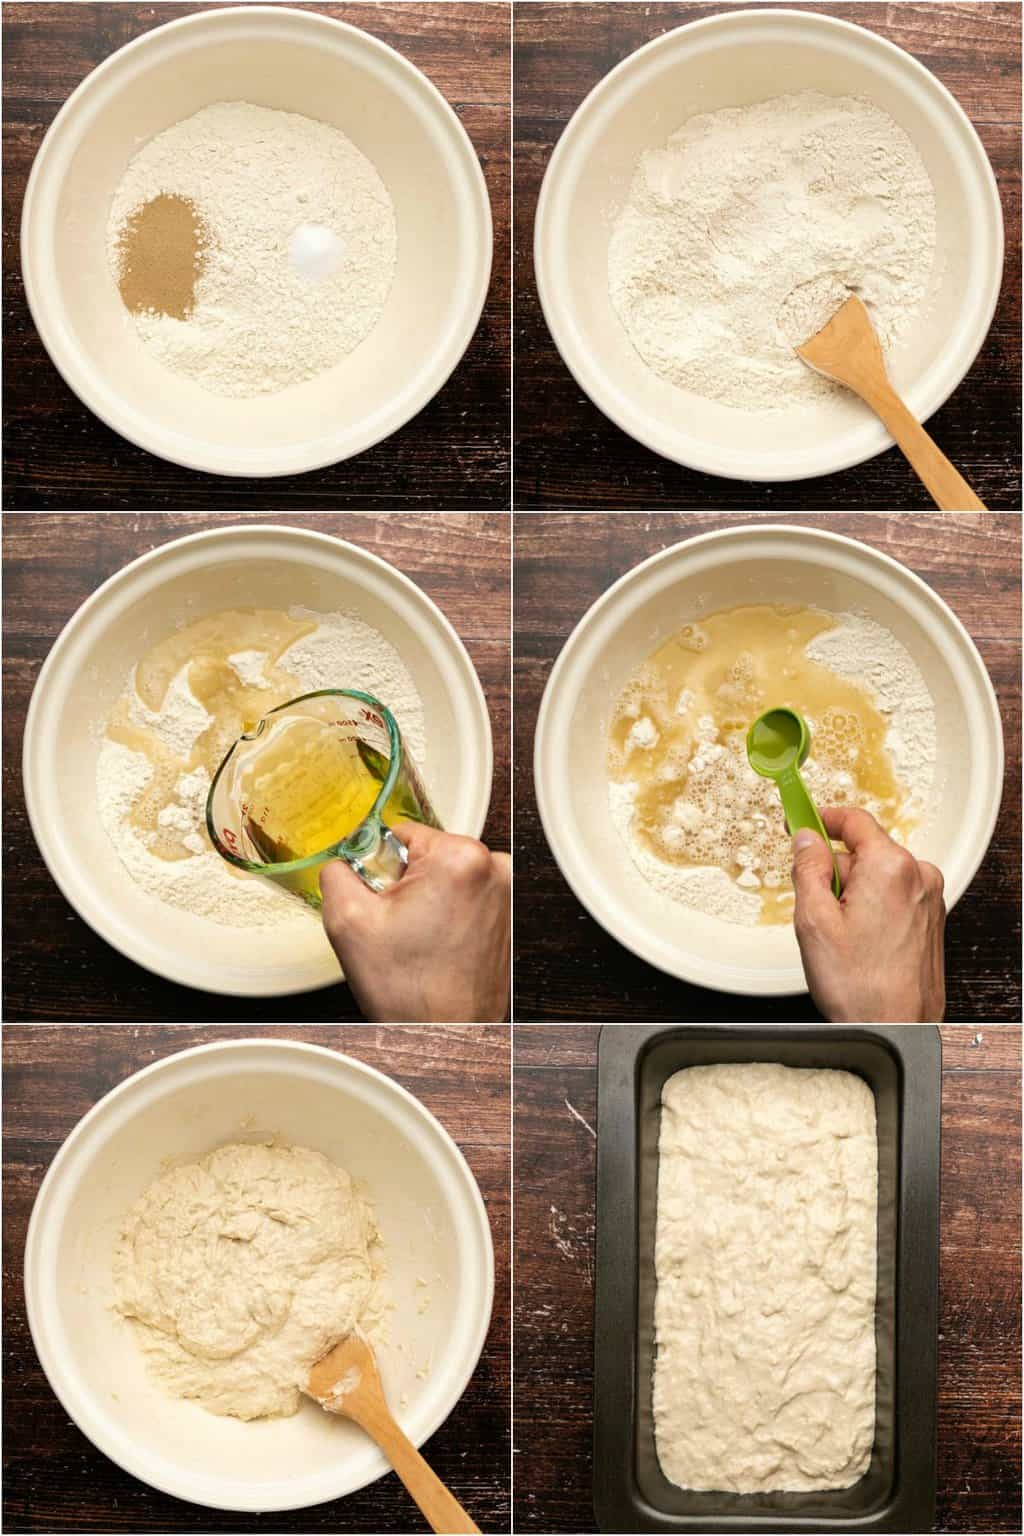 Step by step process photo collage of making the dough for bread.